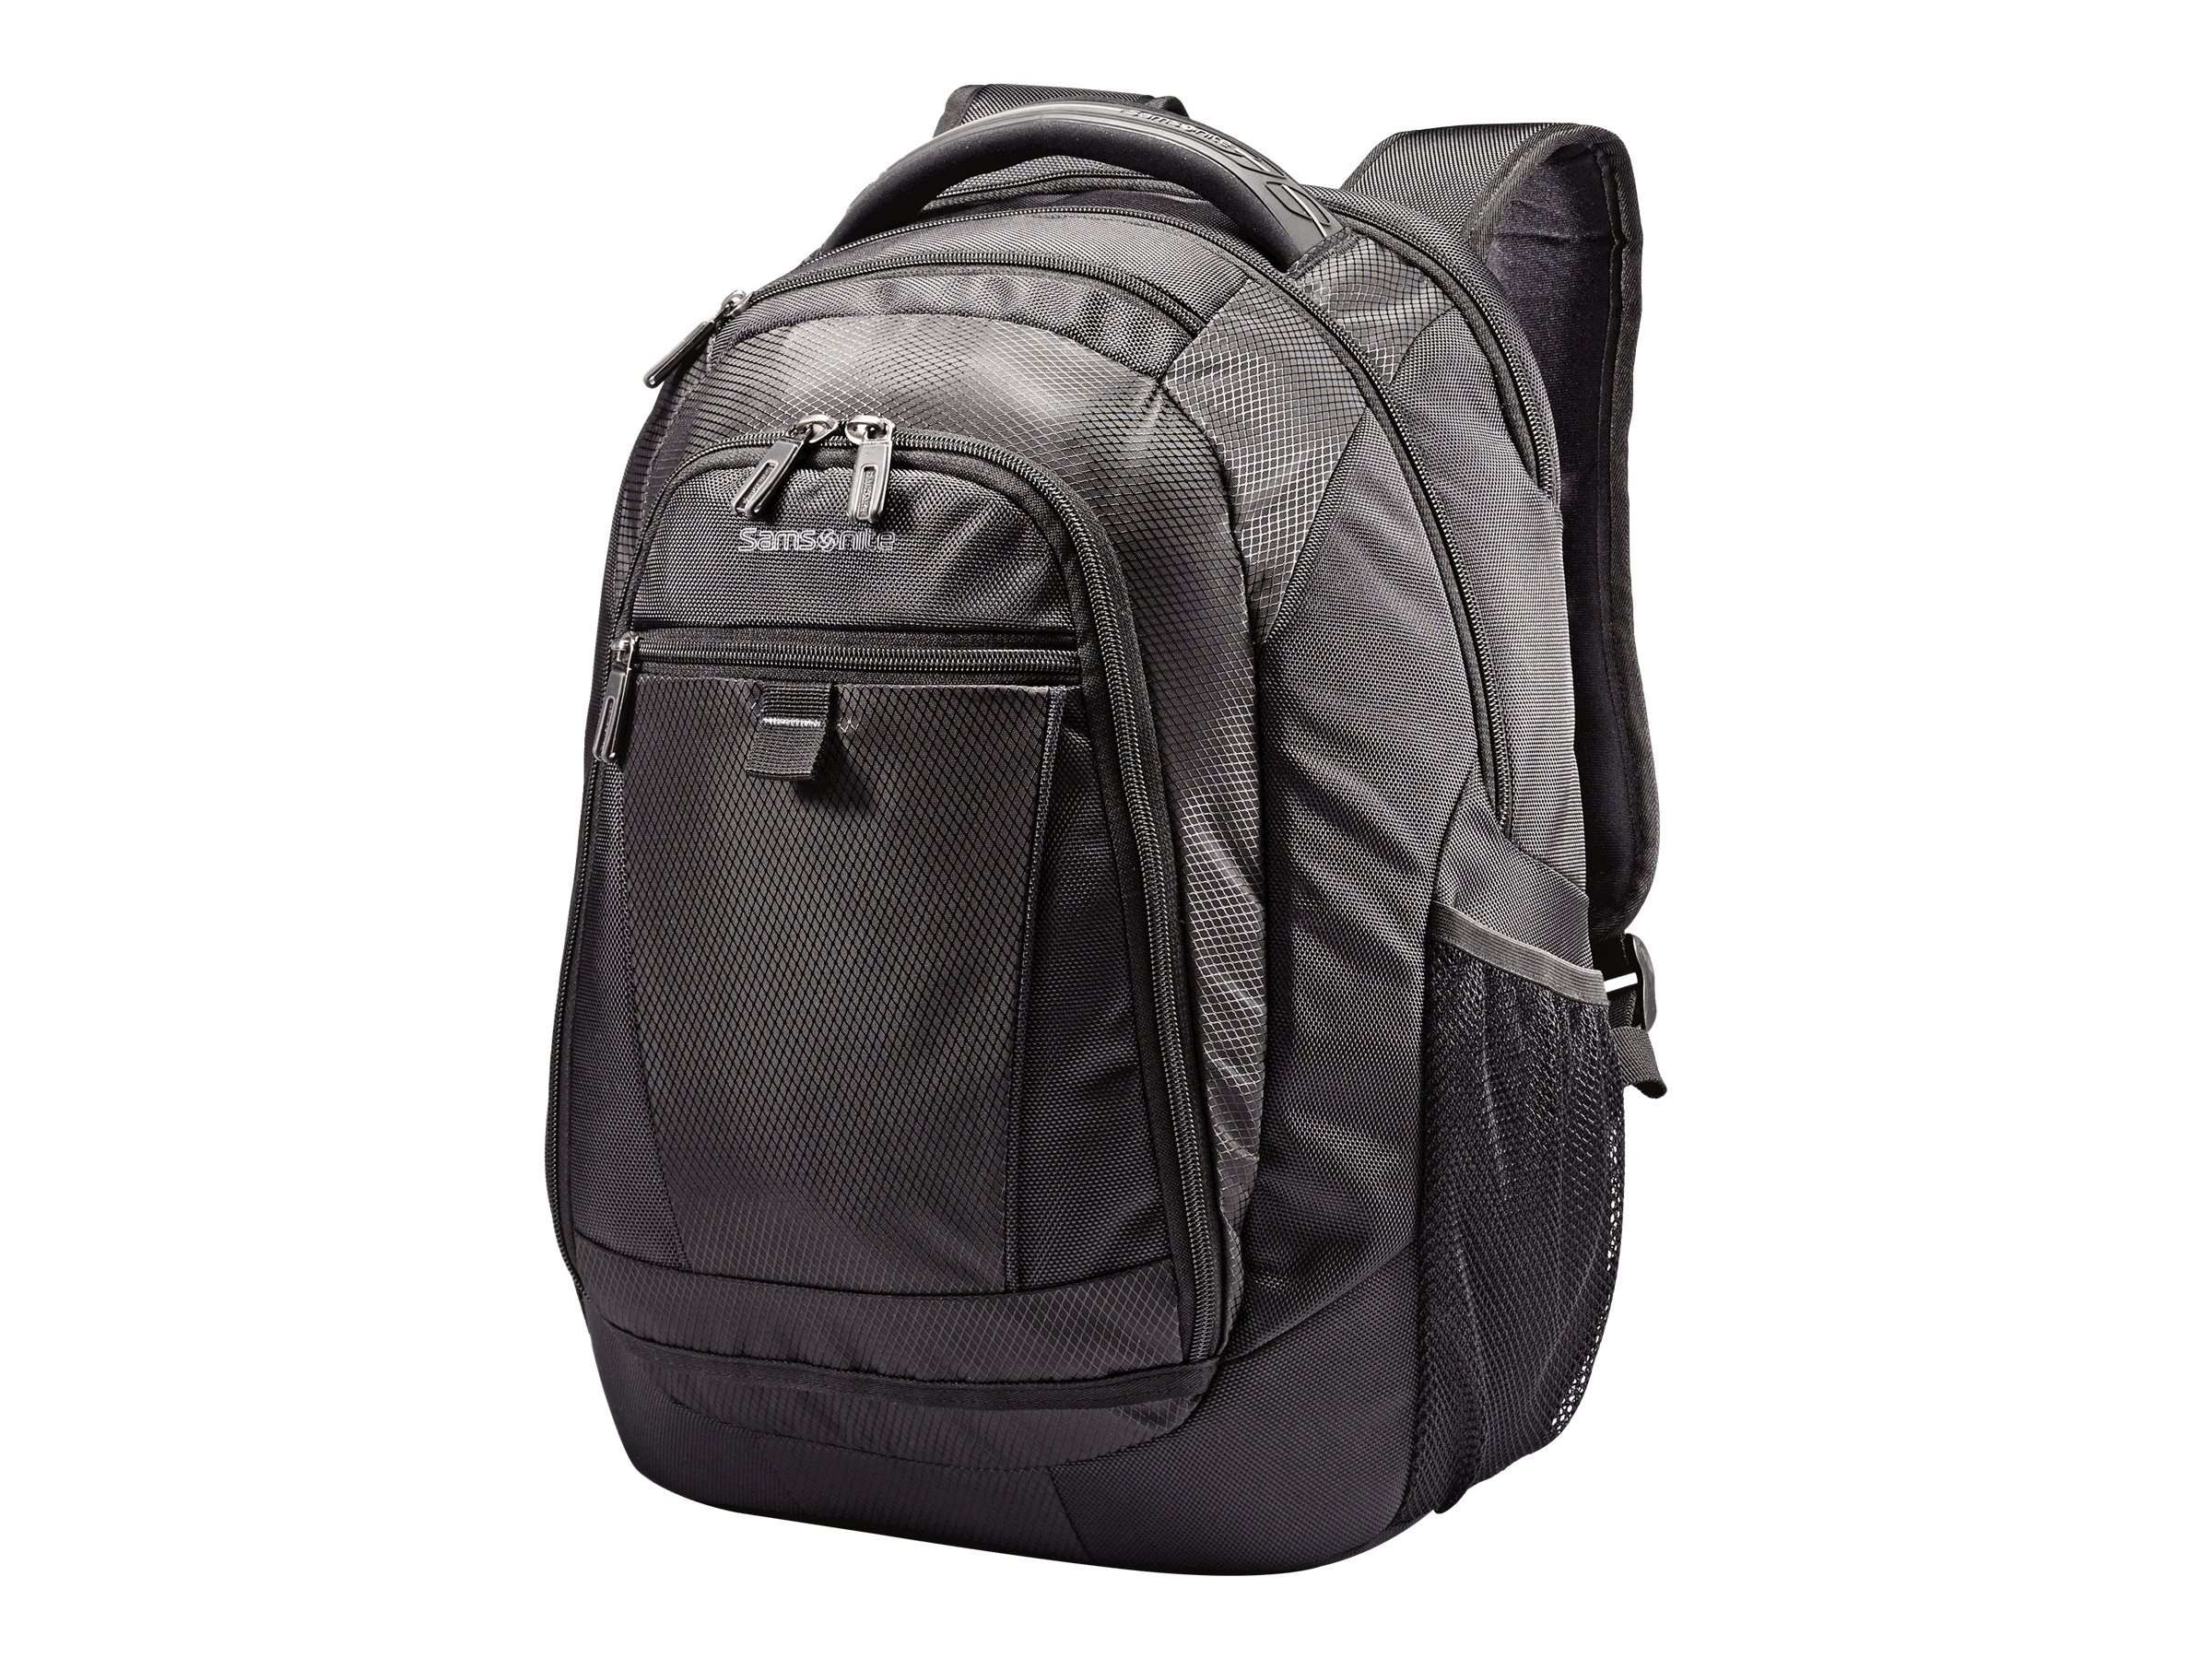 Stephen Gould Tectonic 2 Medium Backpack 15.6, Black, 62364-1041